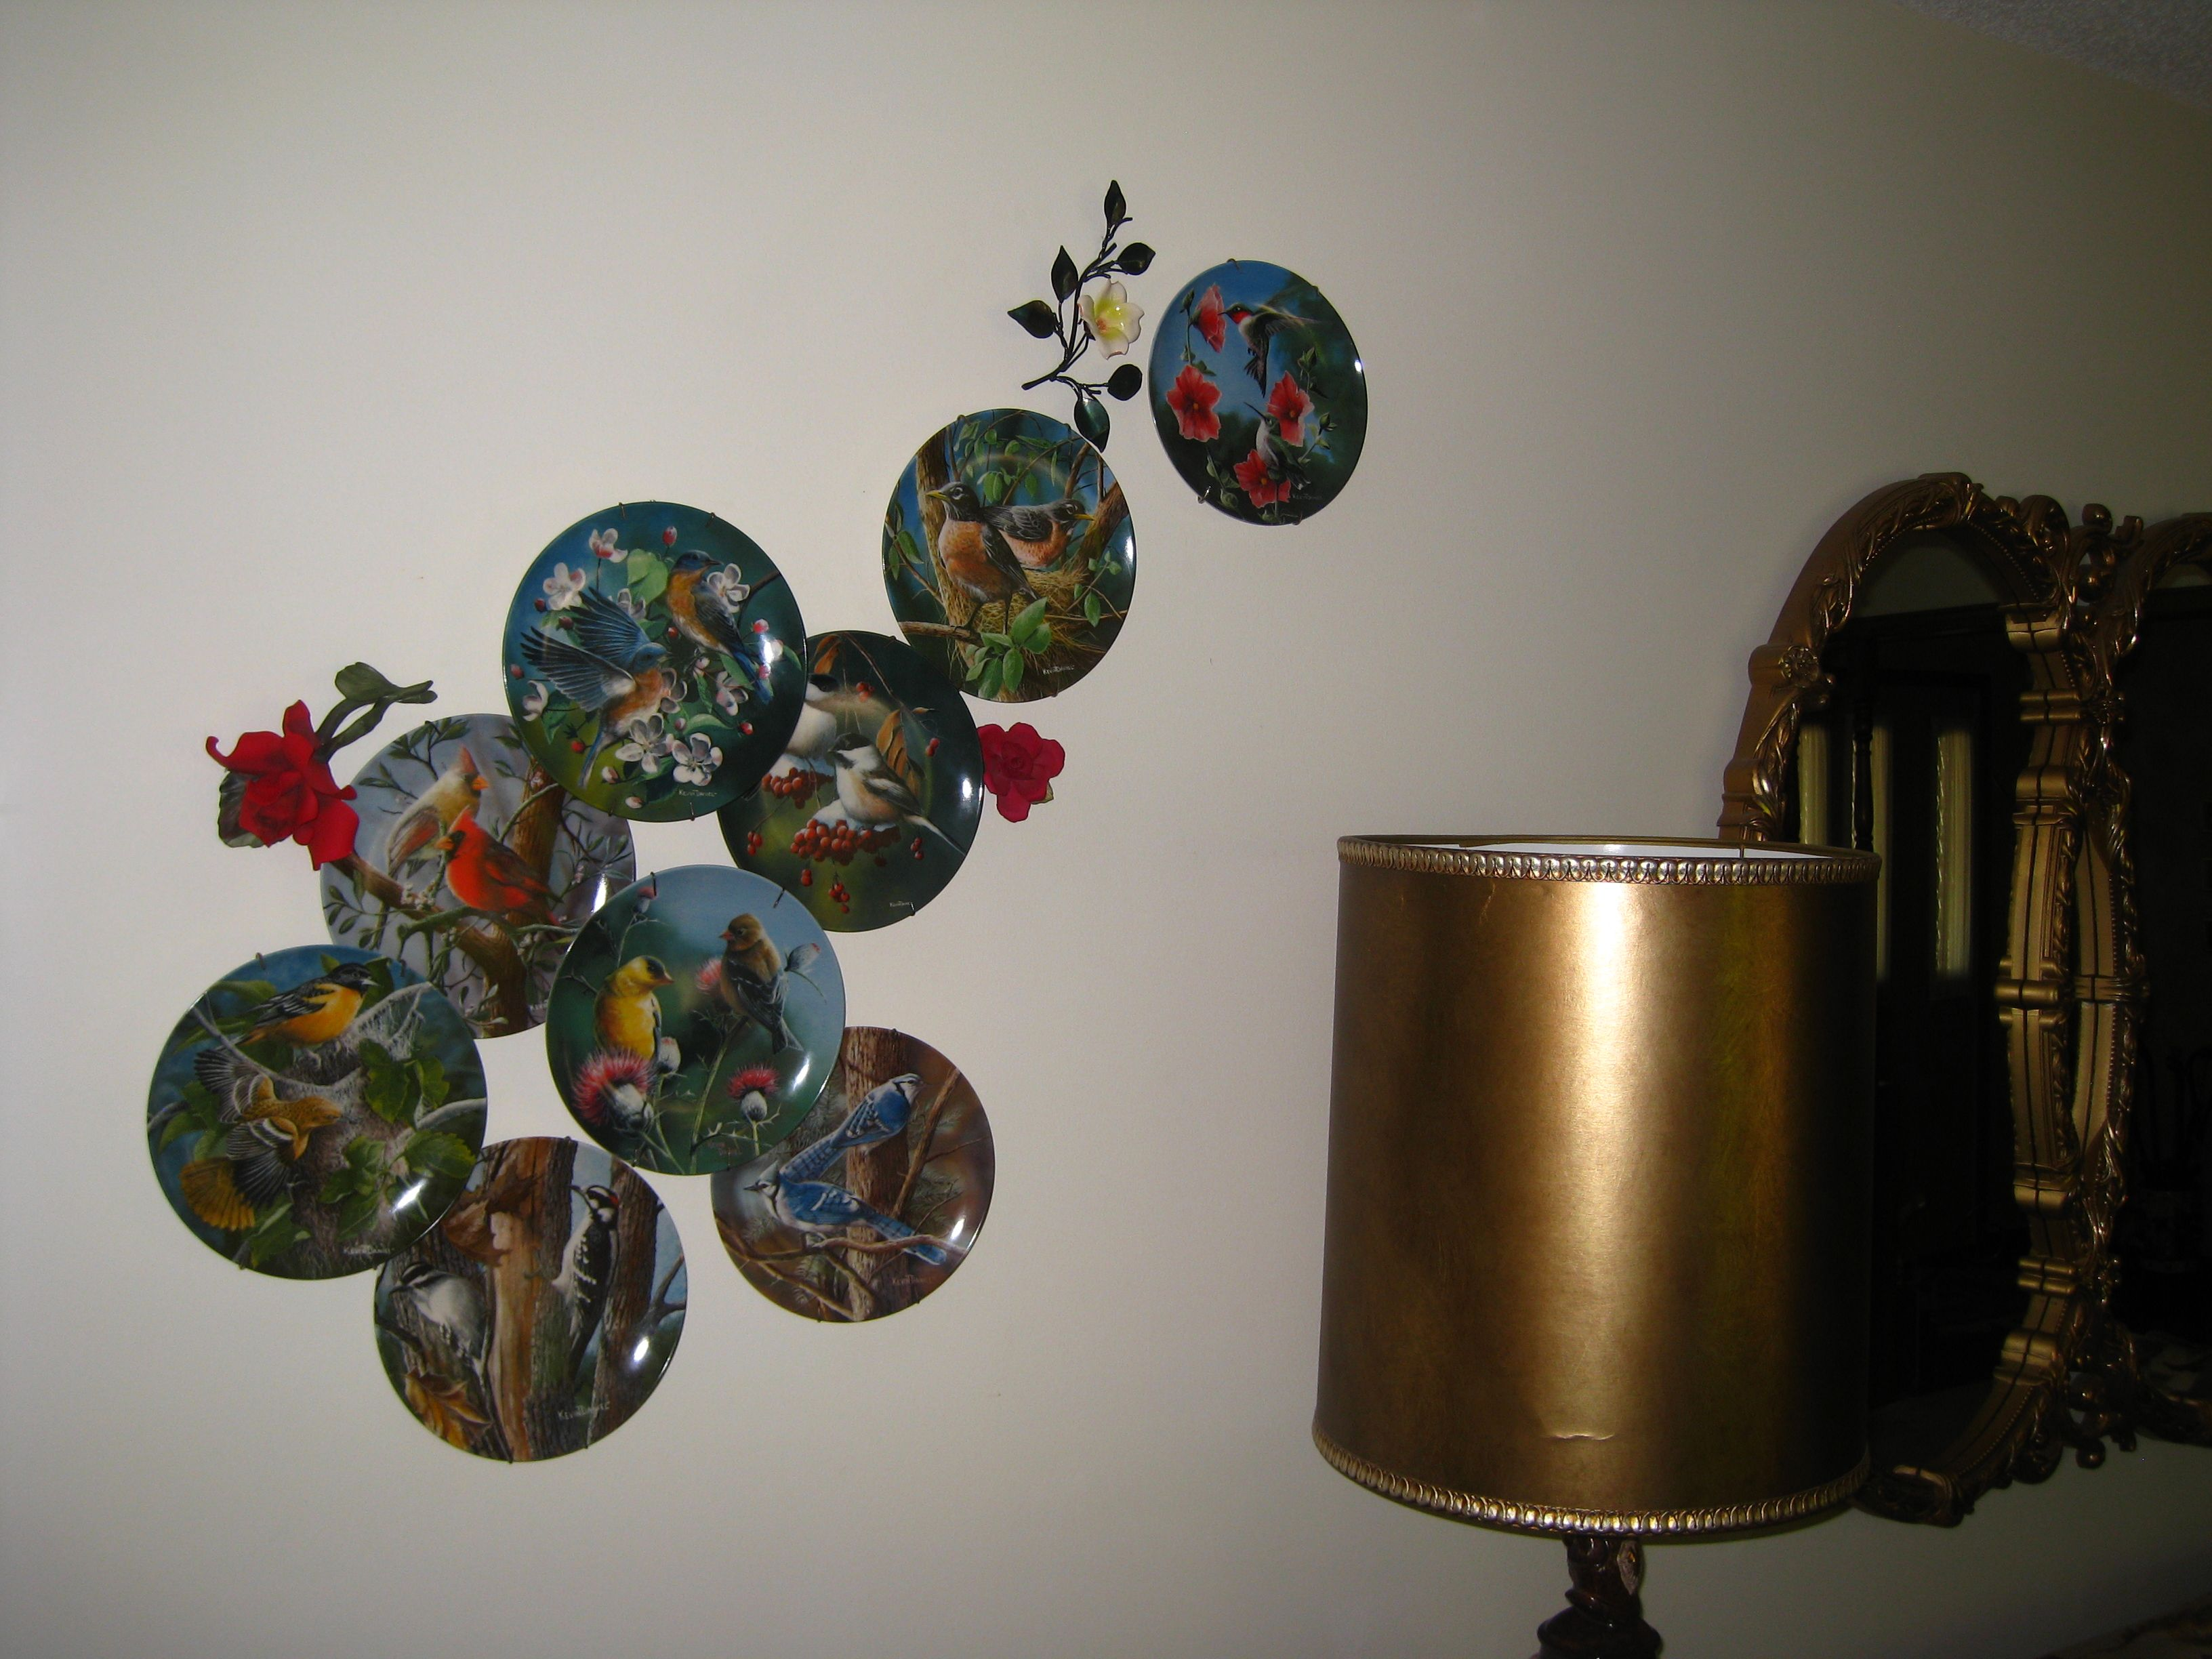 How To Display Bowls Great Way To Display Decorative Plates Great Room Ideas